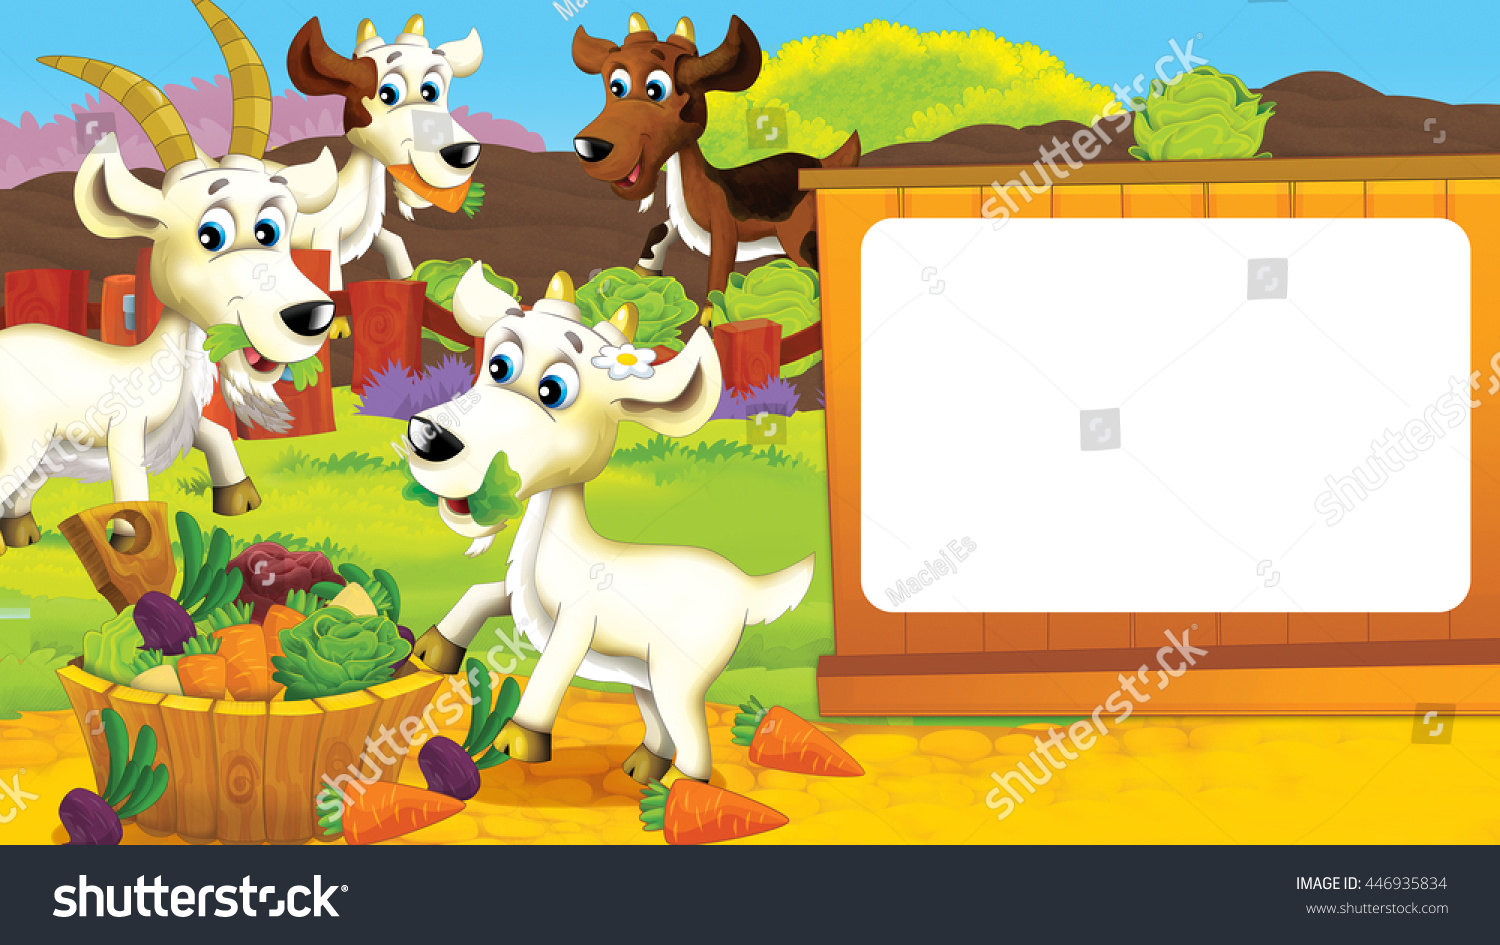 Cartoon Scene Of A Goat On The Farm Having Fun